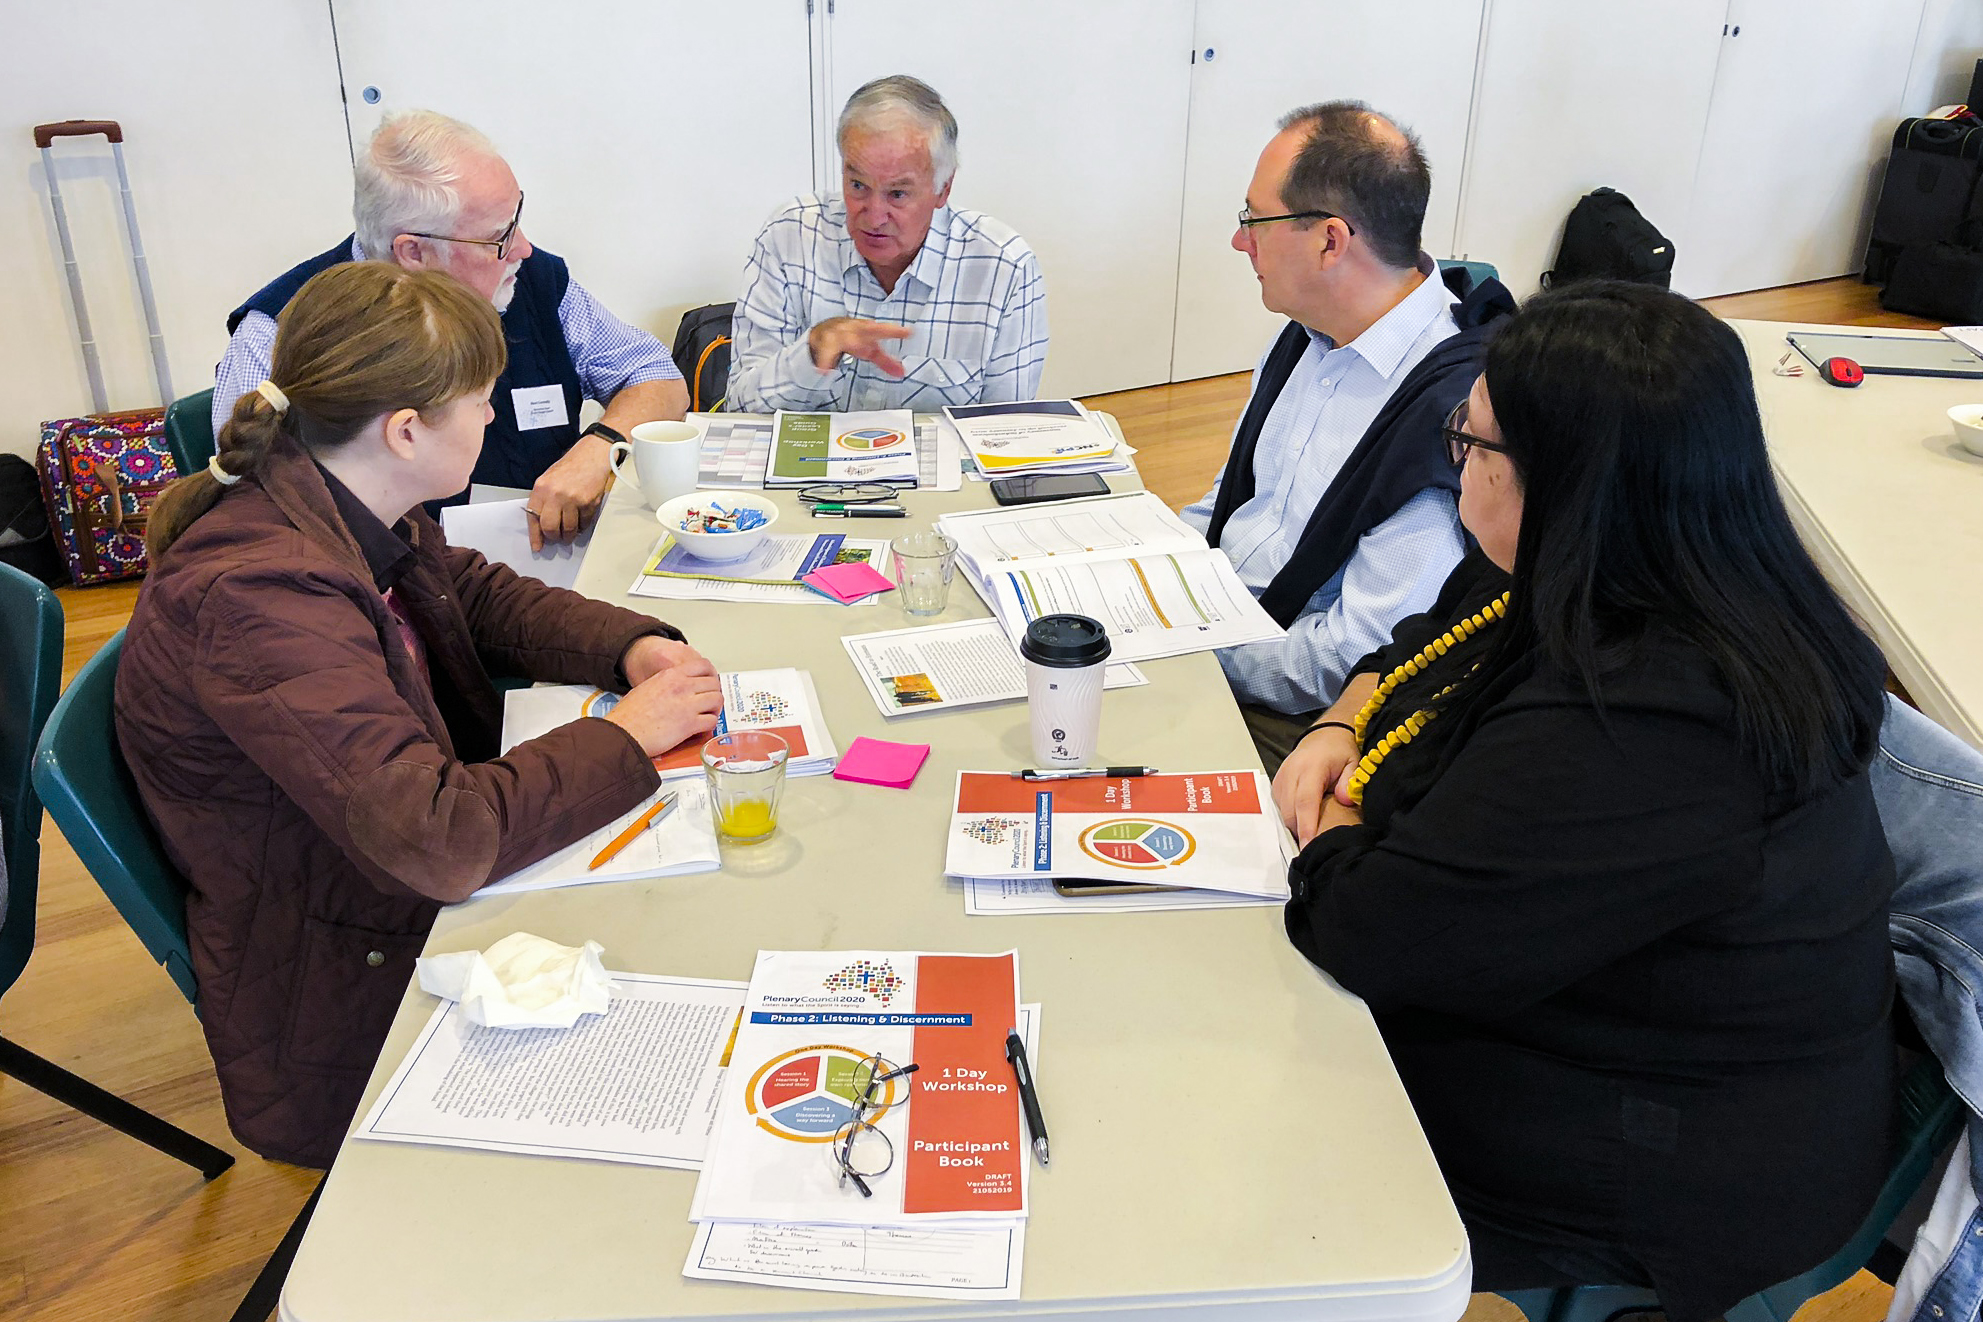 The second Snapshot report for the Plenary Council 2020 Listening and Discernment phase was released last weekend. Image: Supplied.